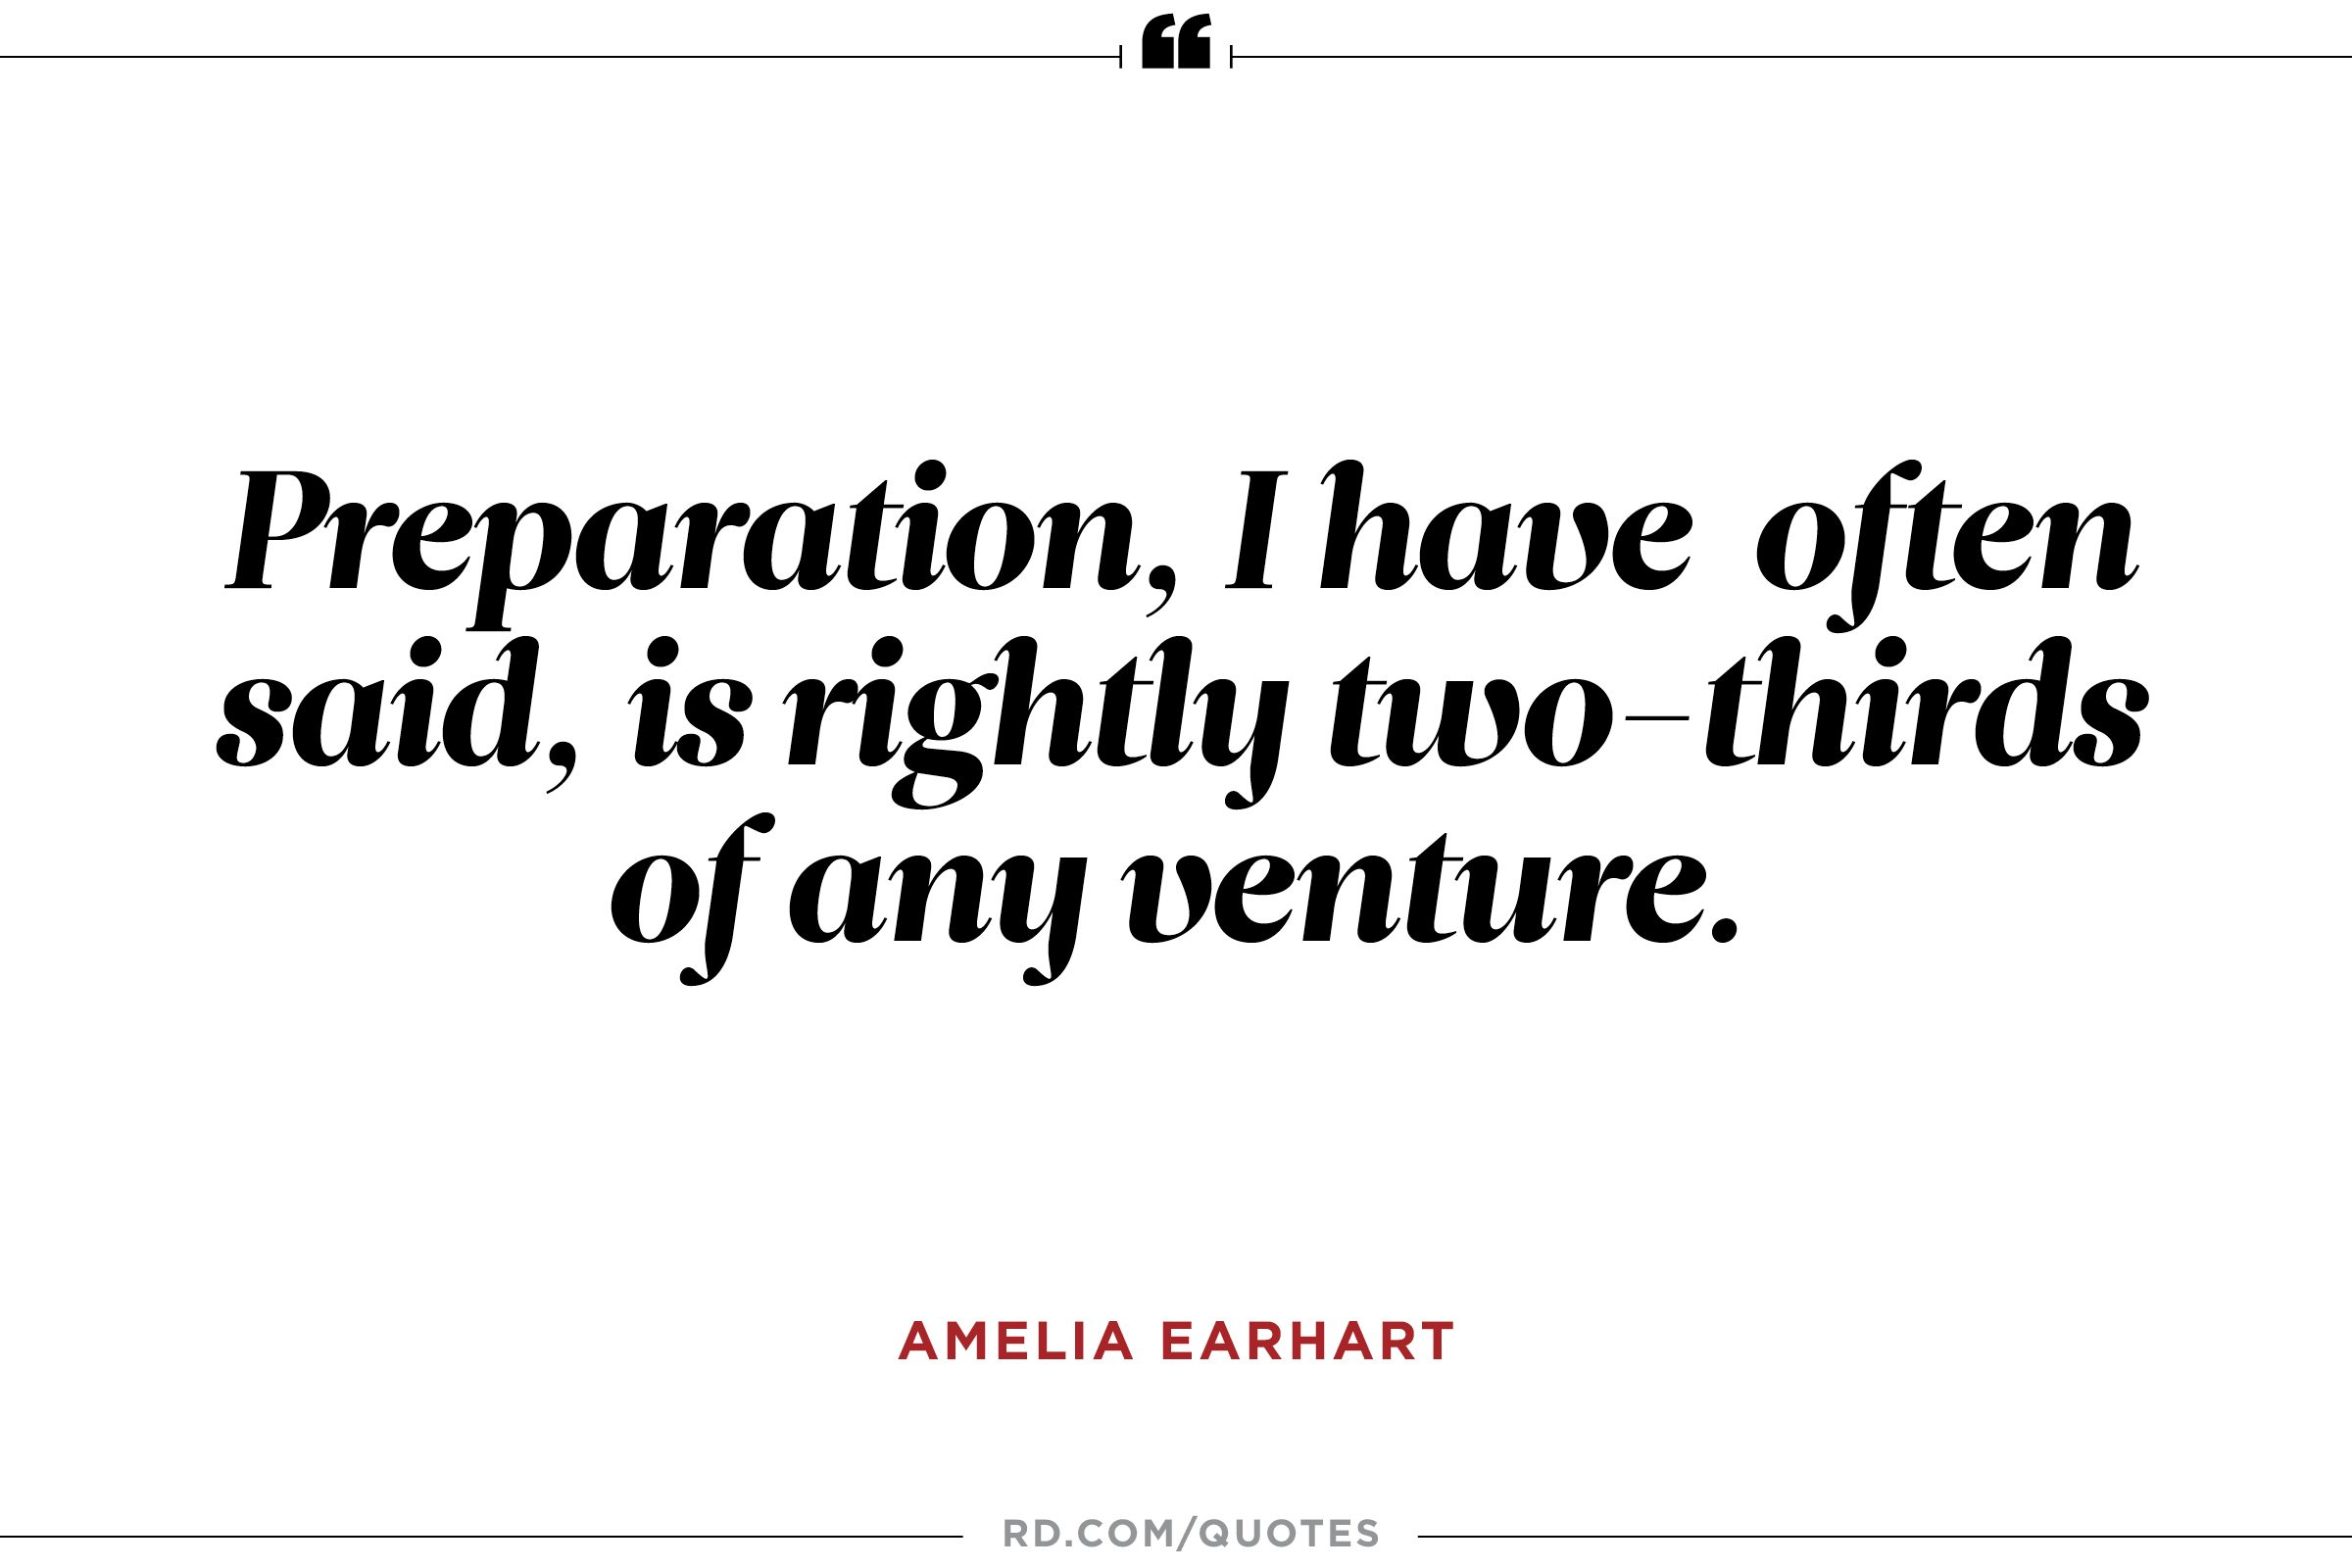 Pinterest Quotes Com: 10 Amelia Earhart Quotes To Propel You To Greatness